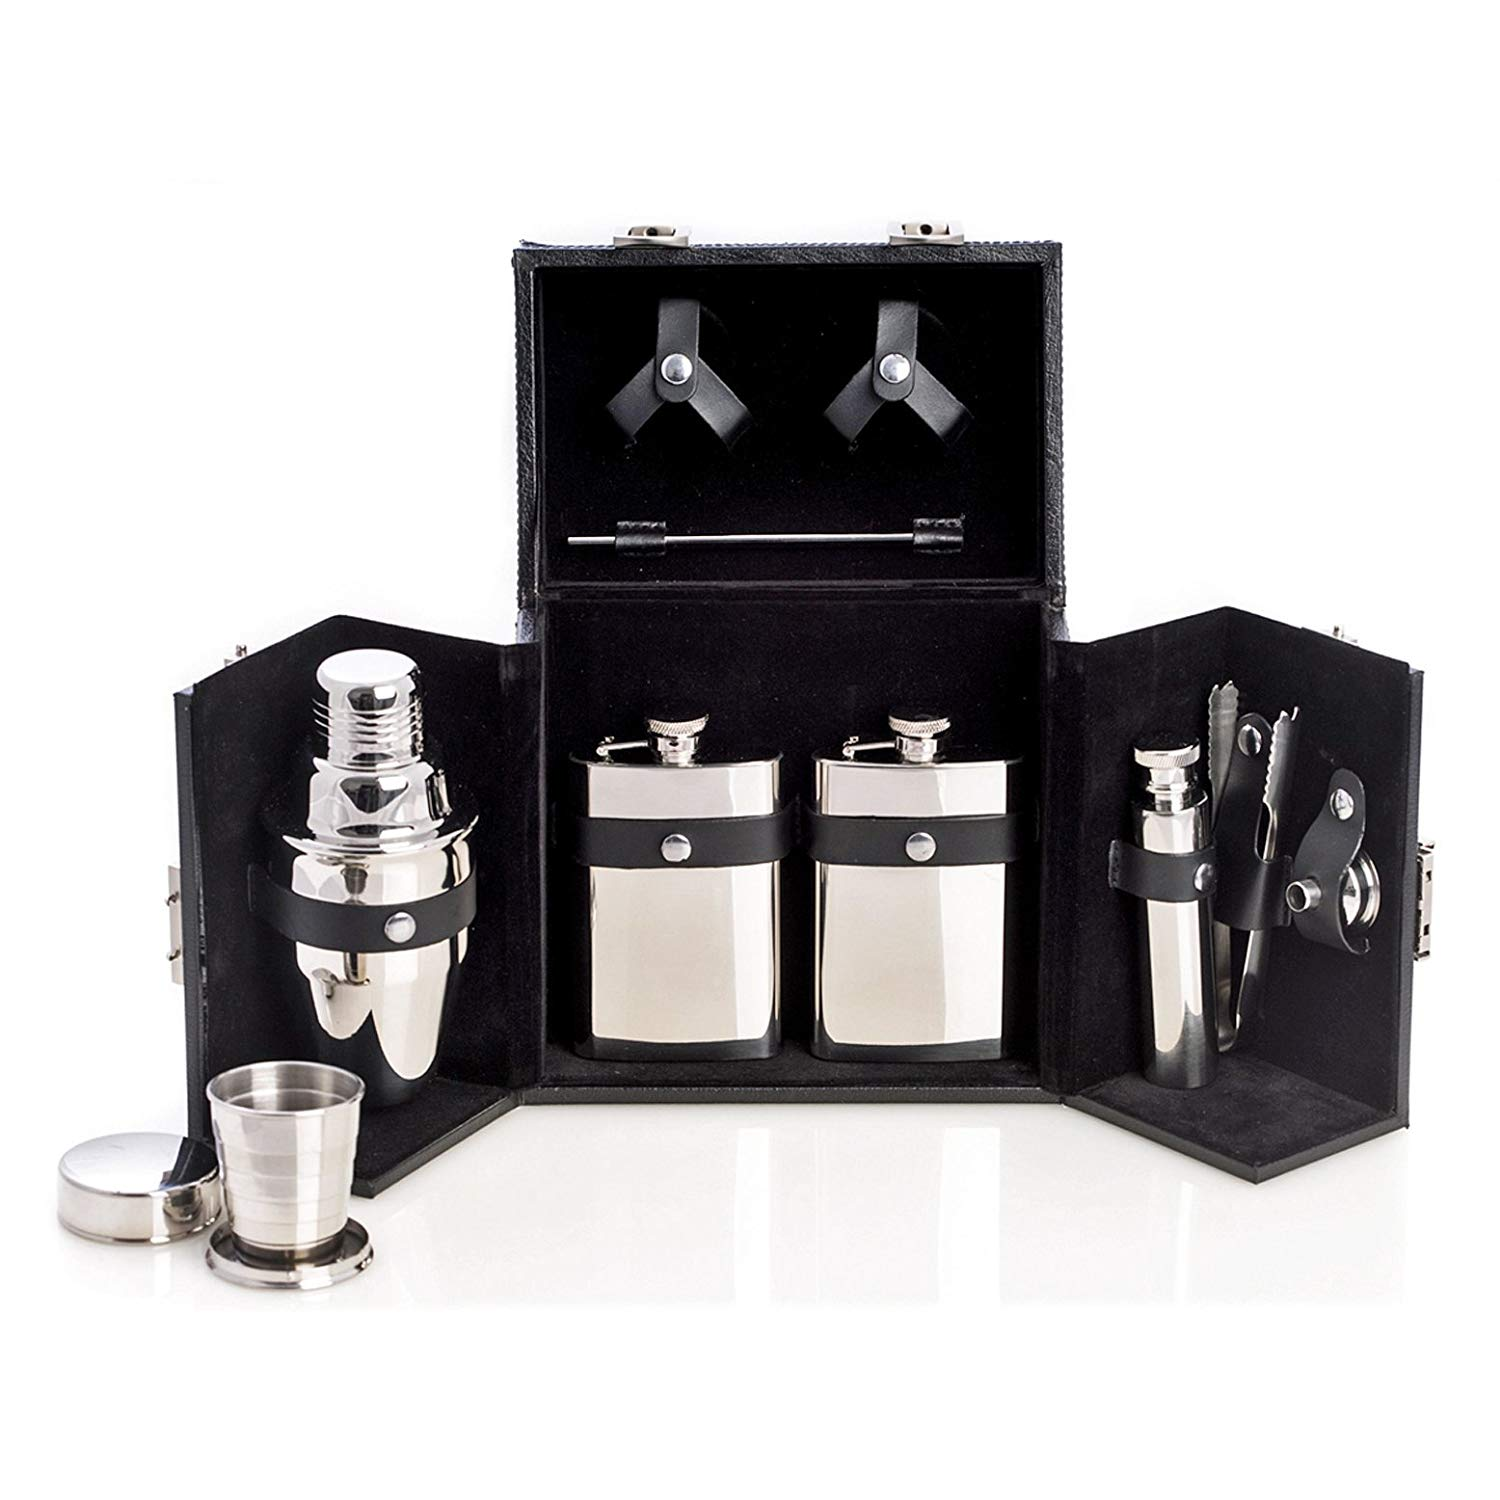 523d10e0722af Travel Bar Set - 10-pc Stainless Steel Travel Bar Set in Black Leather Case